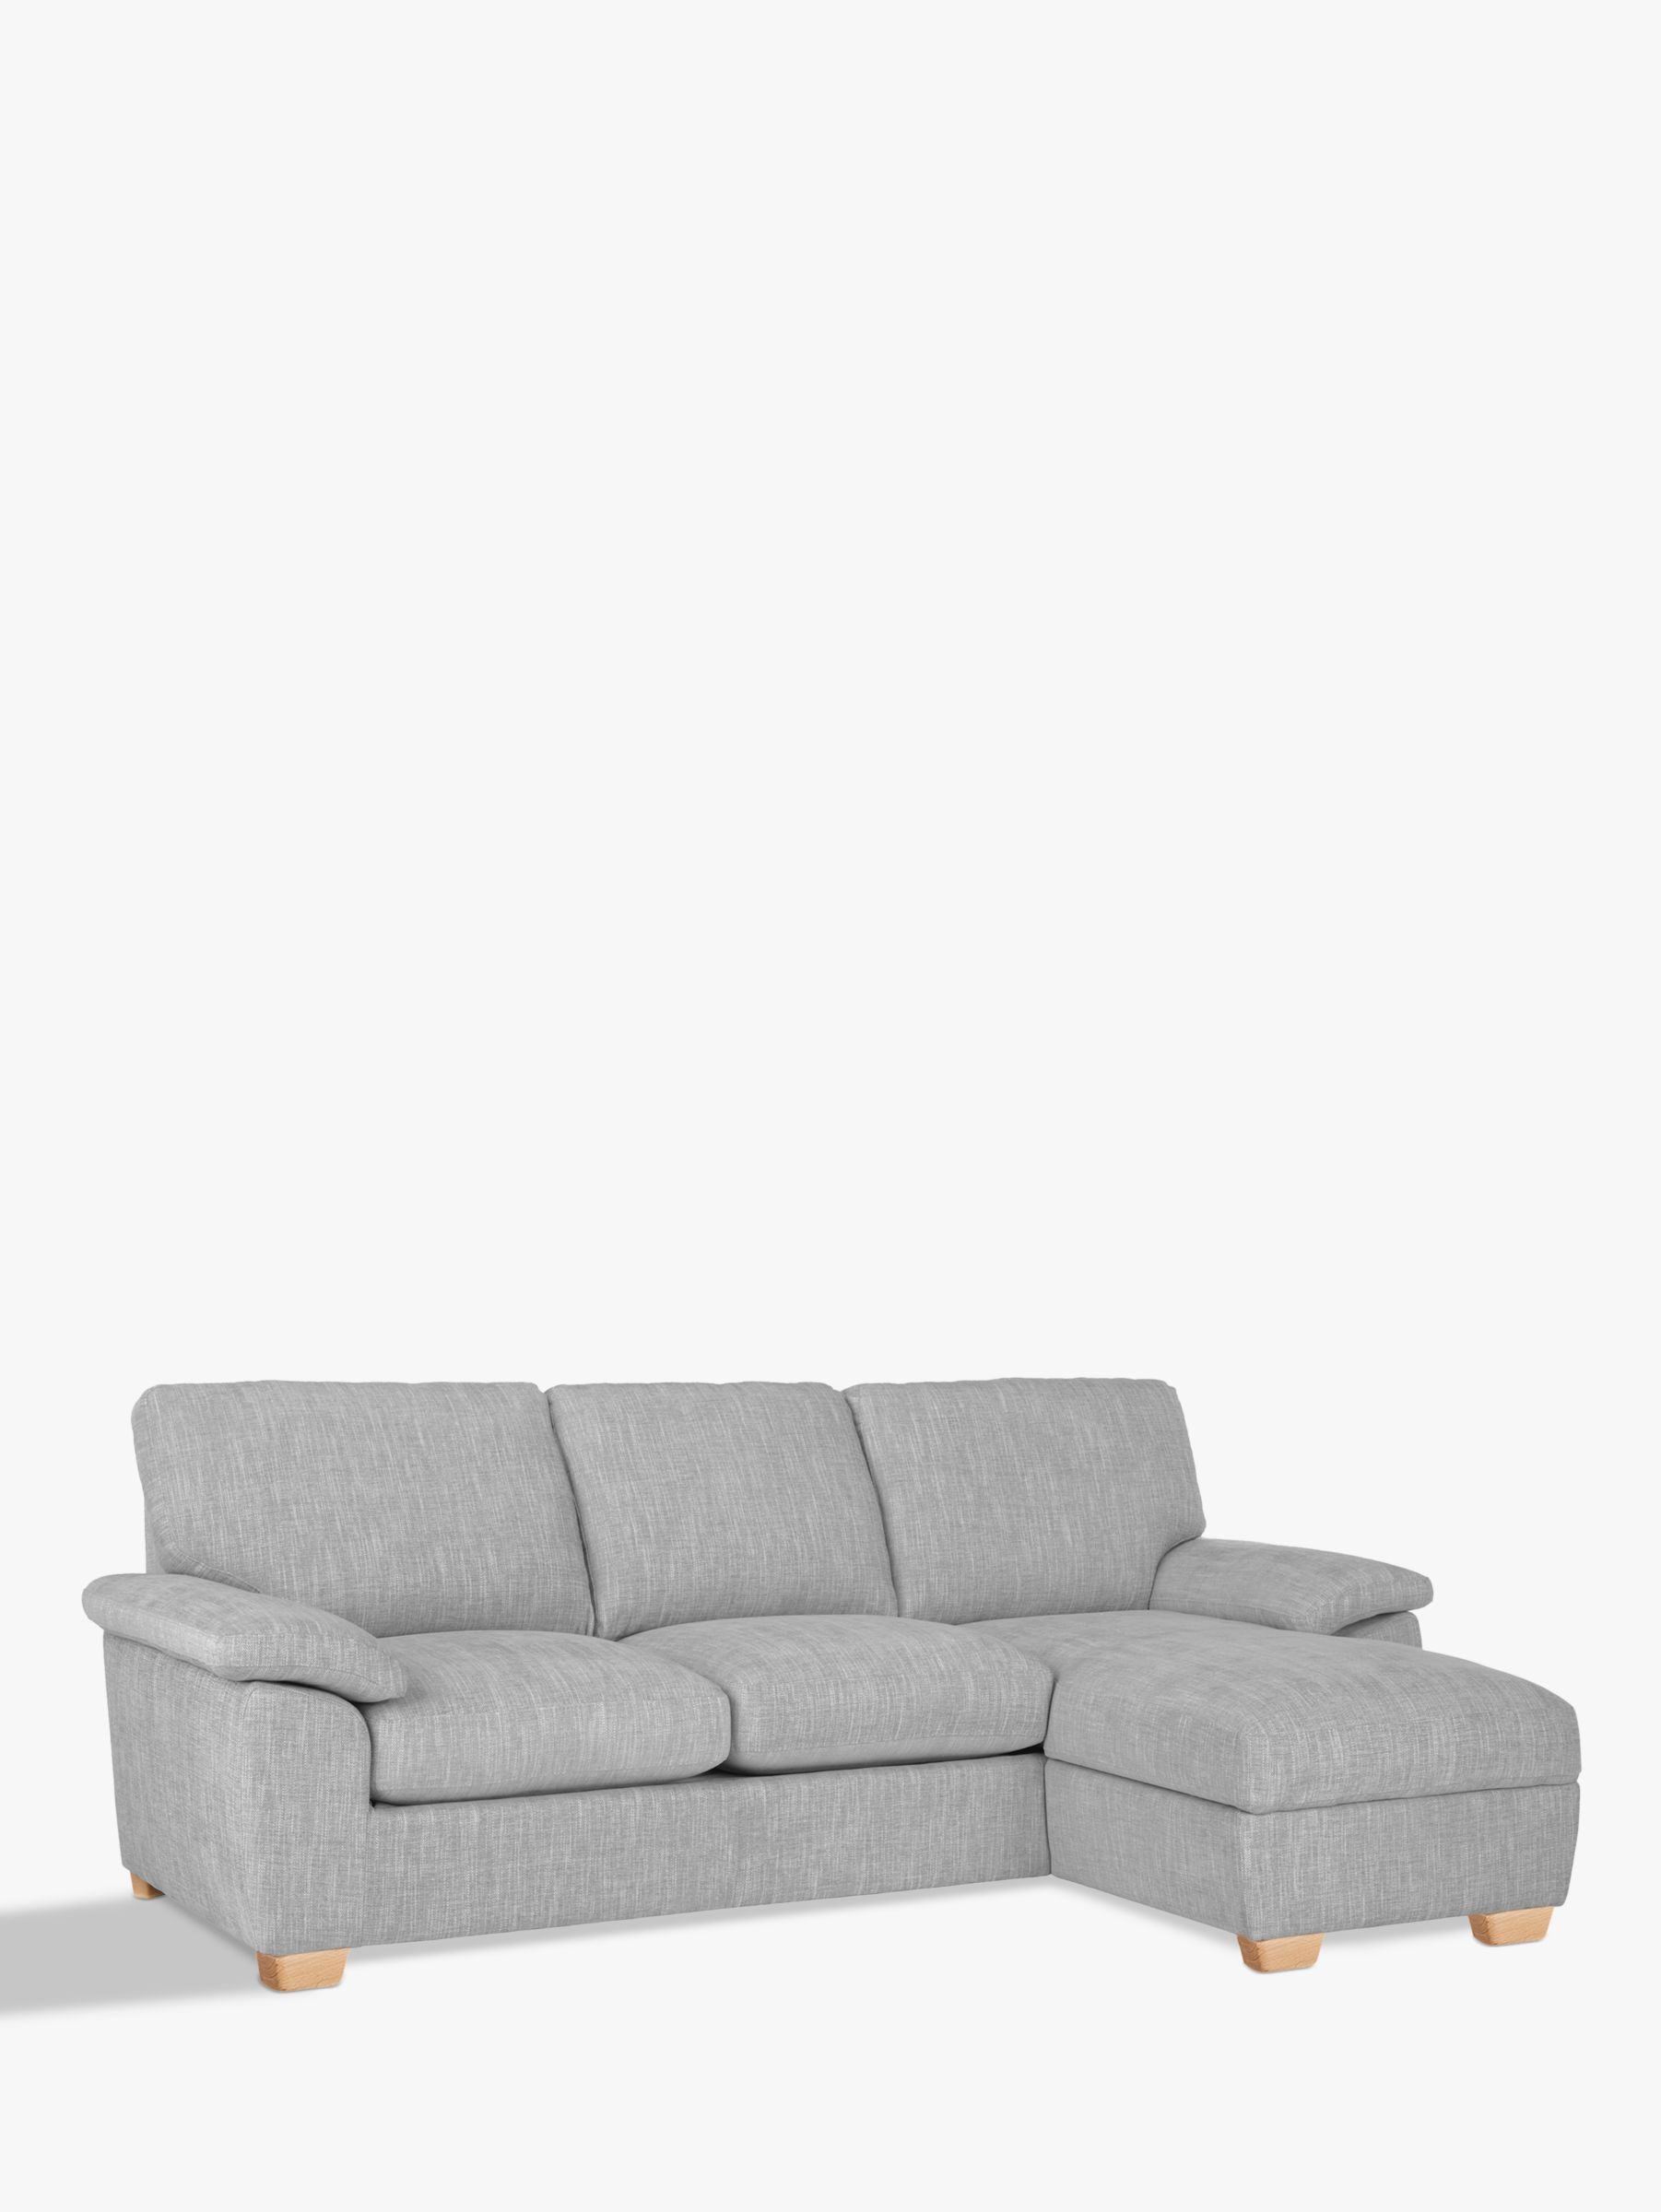 lastman express s sofas bad by sofa collection fancy boy toscana chaise